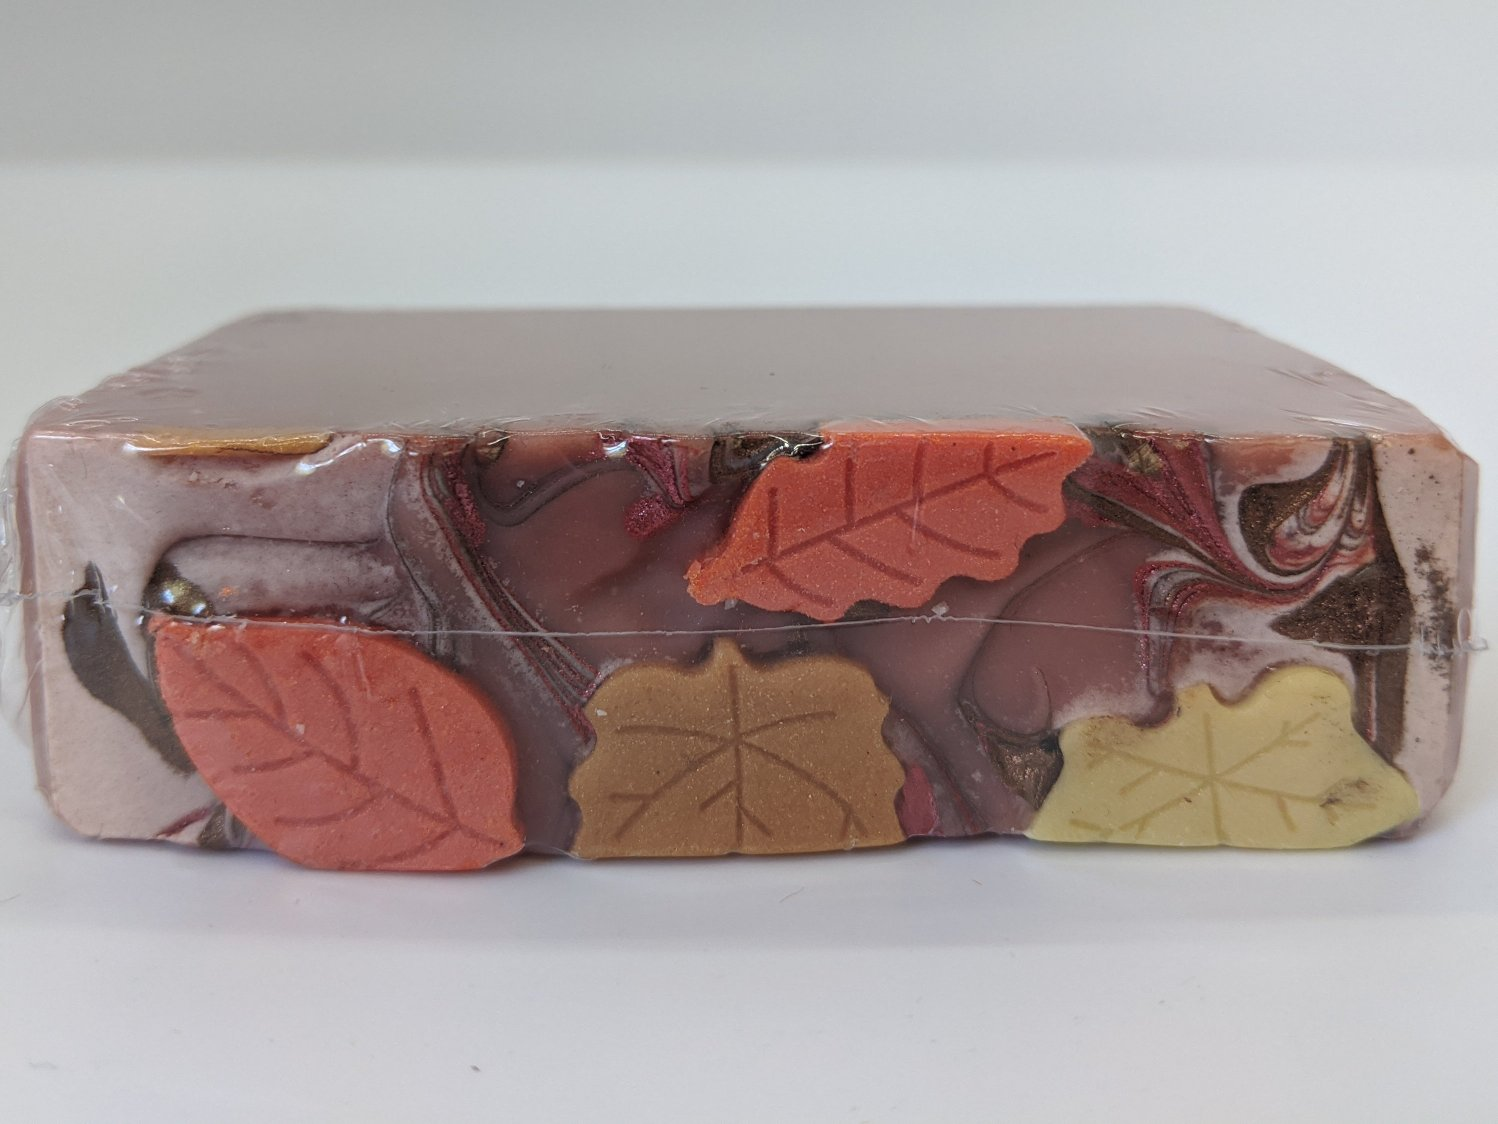 Red Fruit Herbal Tea Autumn Artisan Soap | All The Way Handmade | Handmade Soap | Artisan Soap | Small Business